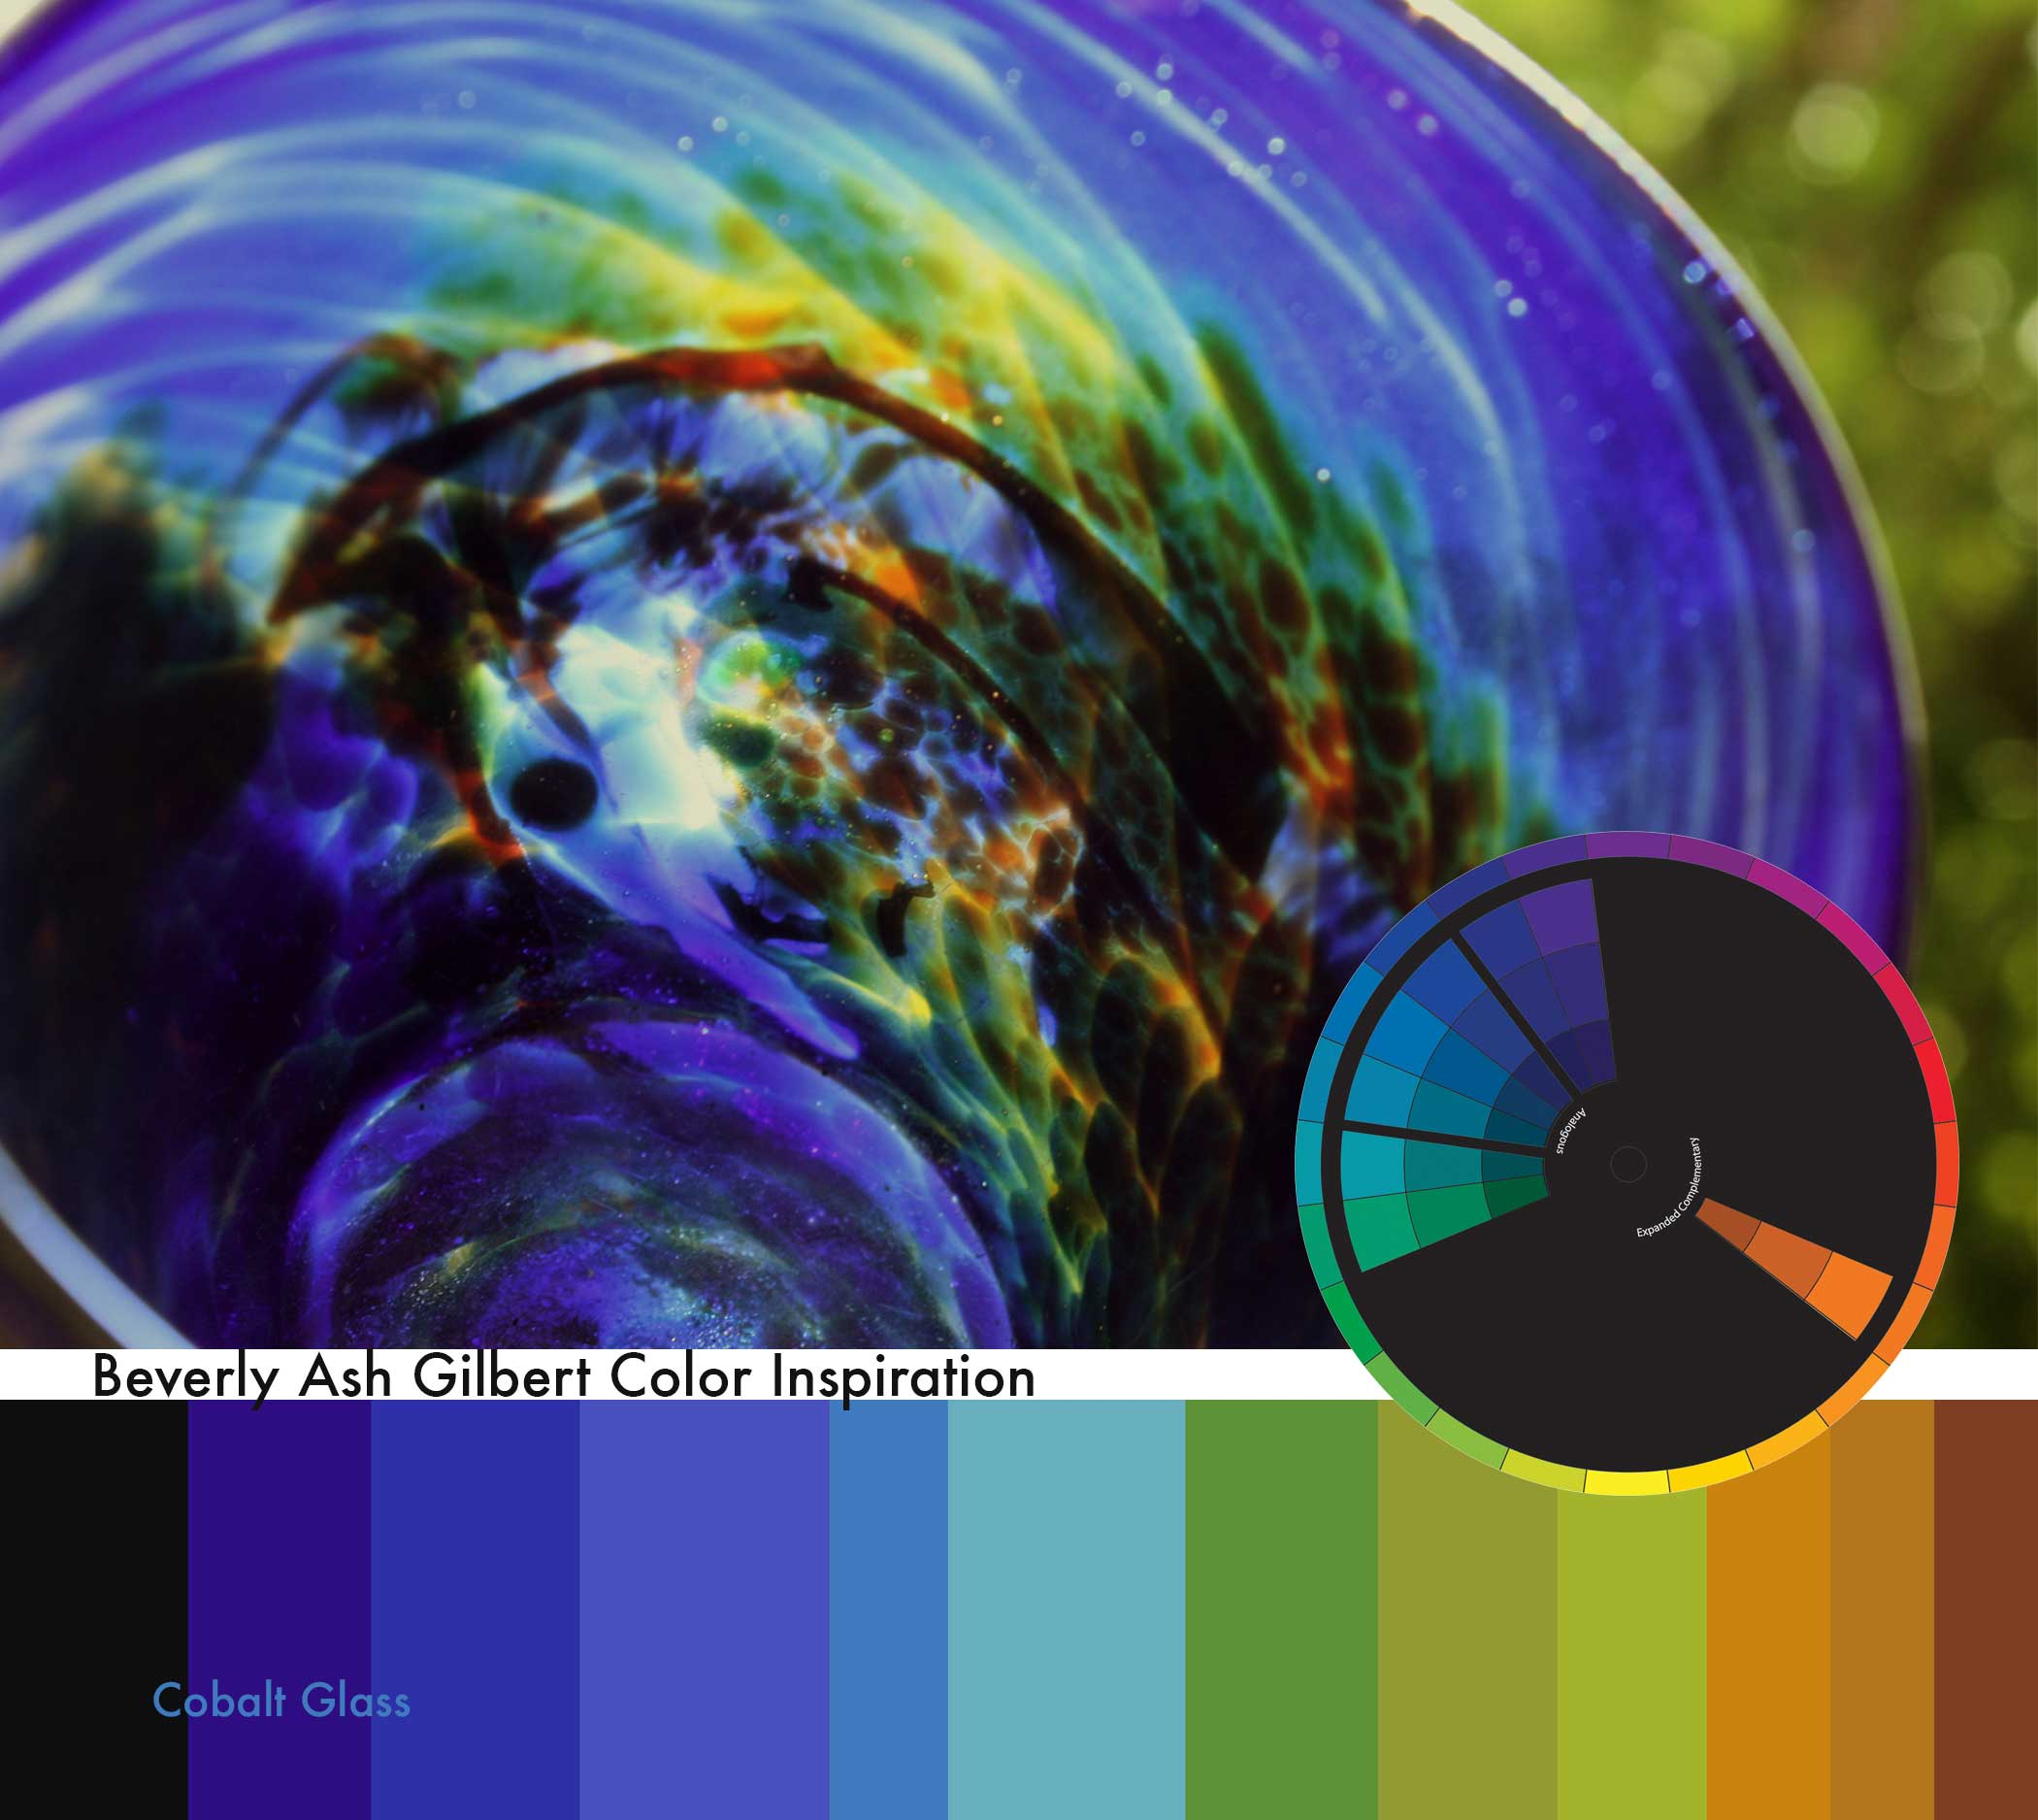 ColorInspiration_CobaltGlass_small.jpg